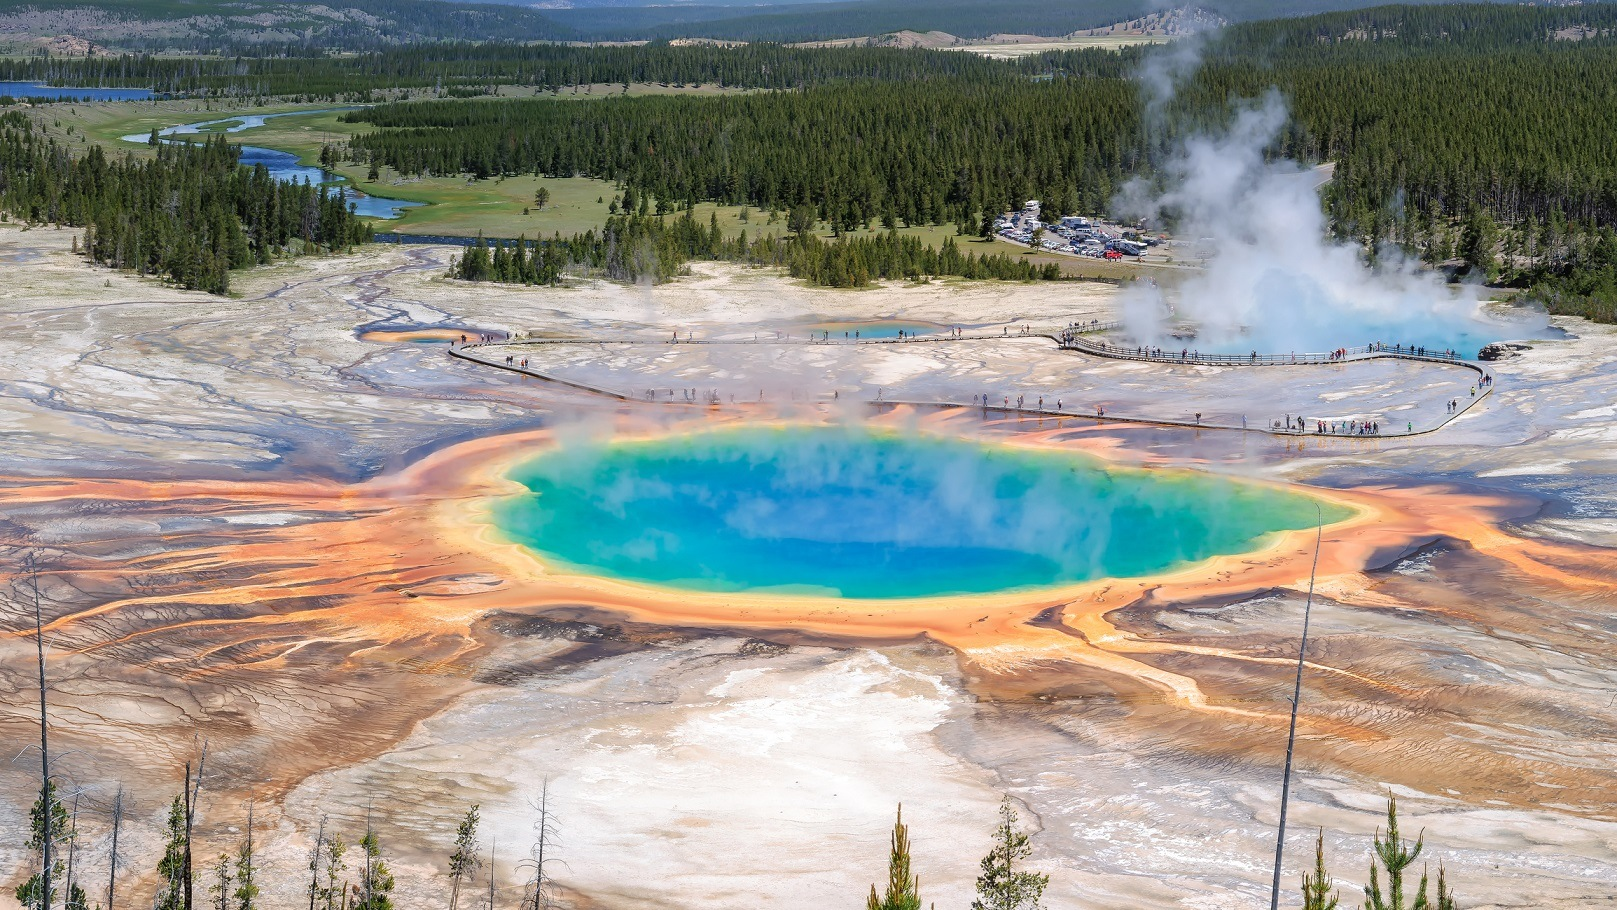 Yellowstone and 9 other active volcanoes that could erupt at any minute grand prismatic spring yellowstone national park sciox Gallery